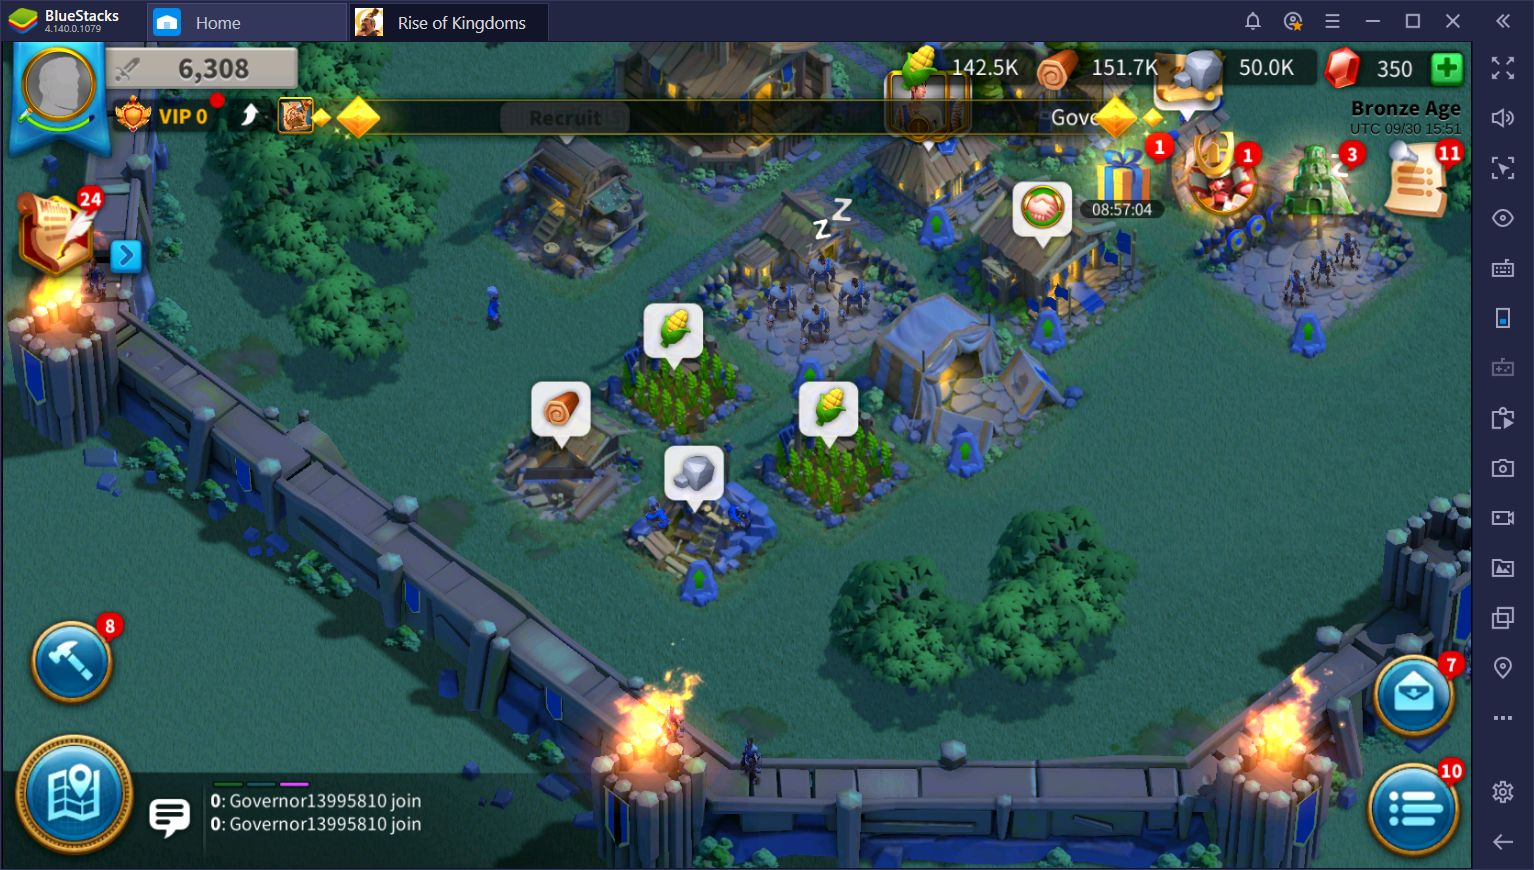 BlueStacks Macros for Rise of Kingdoms